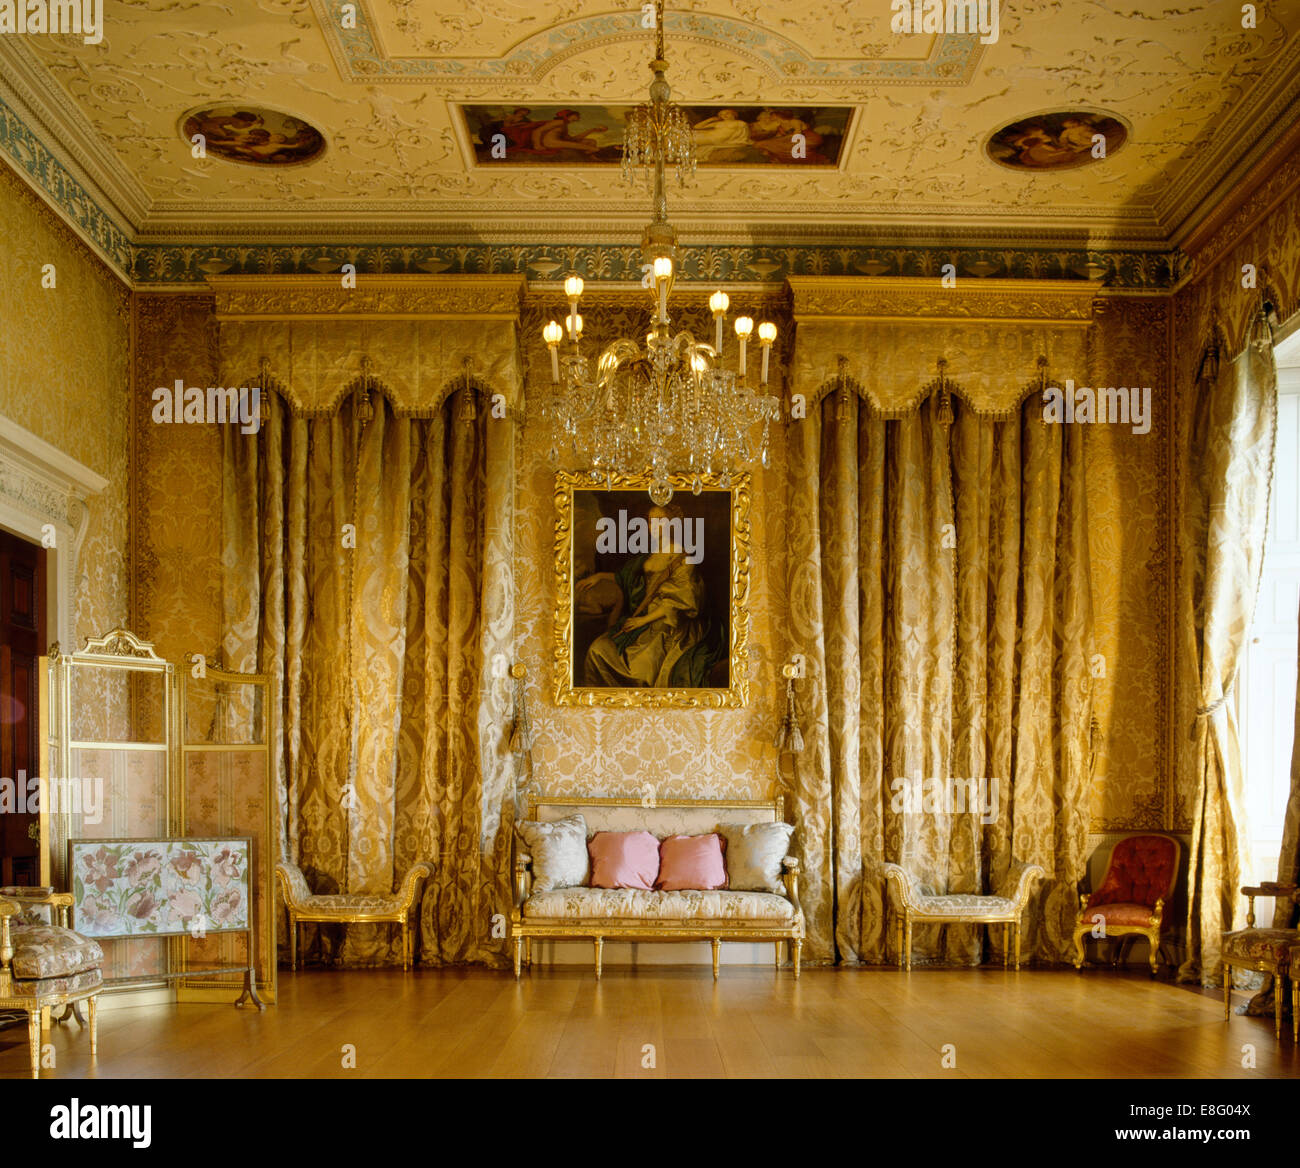 Opulent Gold Curtains And Gilt Furniture In Stately Home Drawing Room